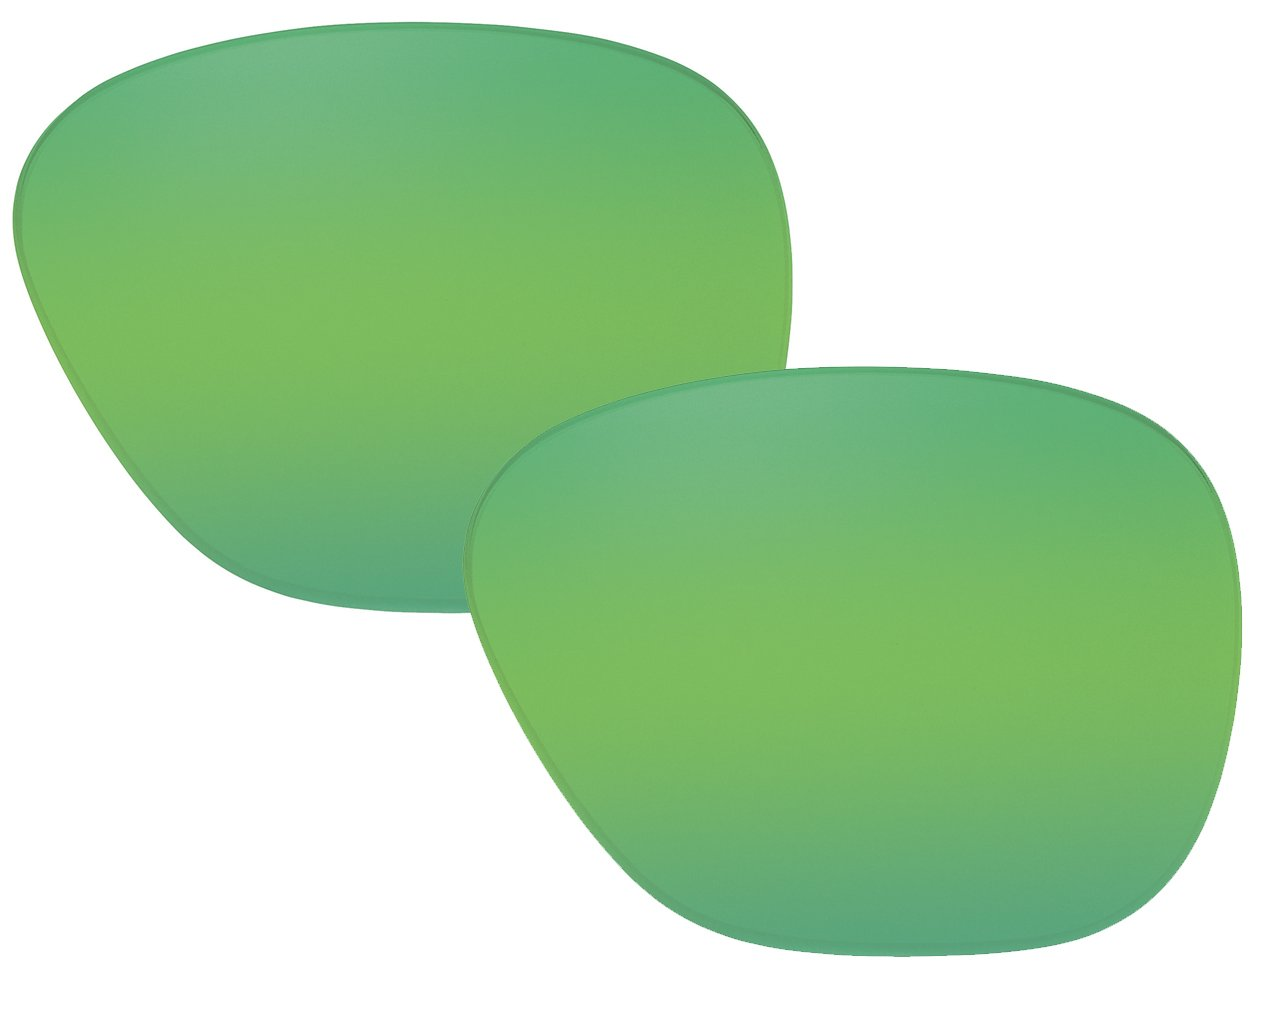 Suncloud Optics Sentry Authentic Replacement Polarized Lenses (Green Mirror Lens) by Suncloud